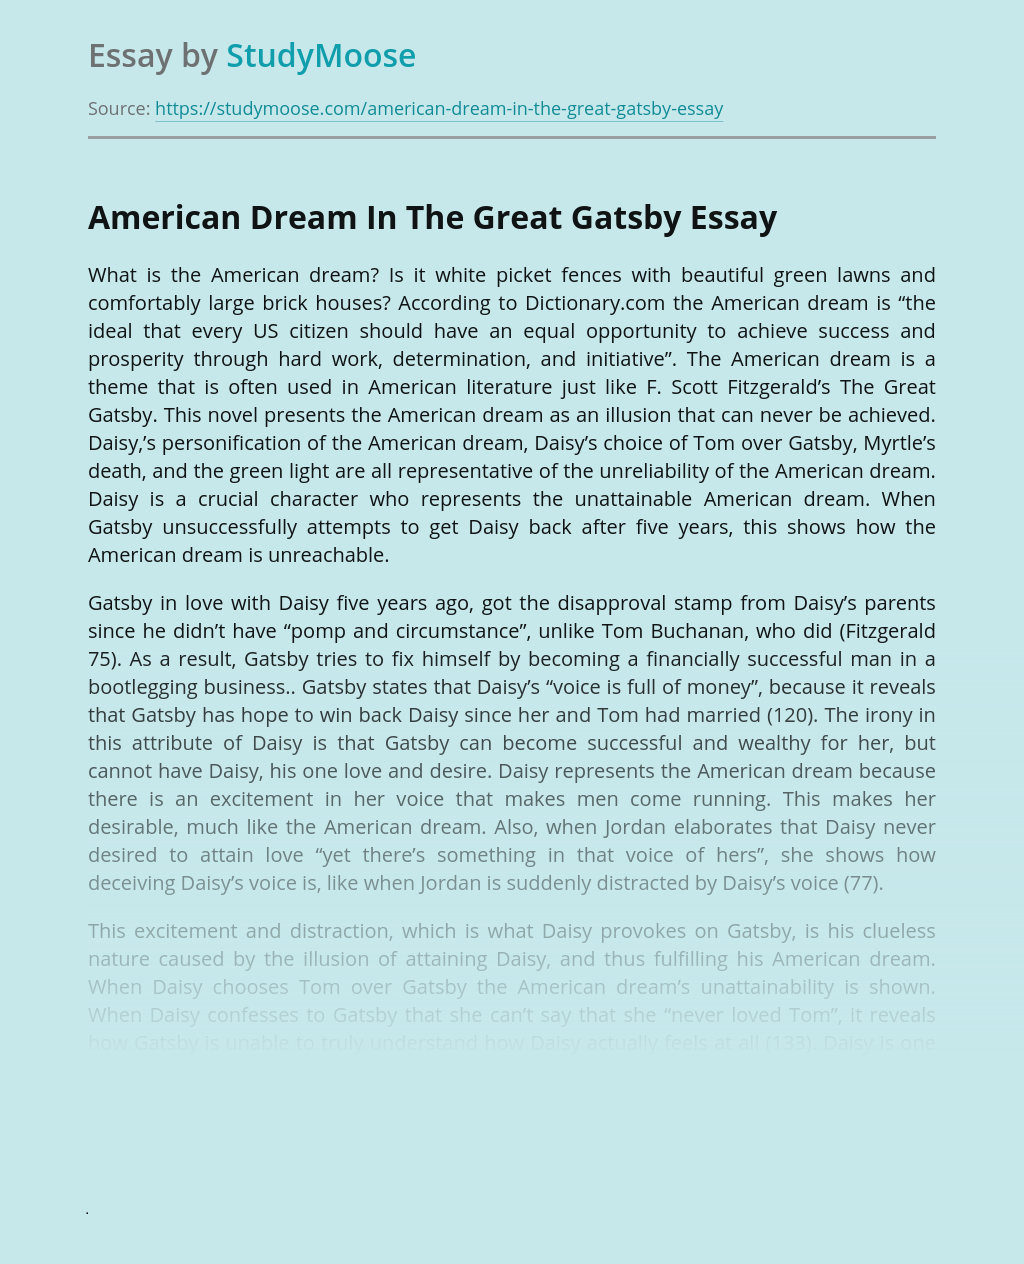 American Dream In The Great Gatsby